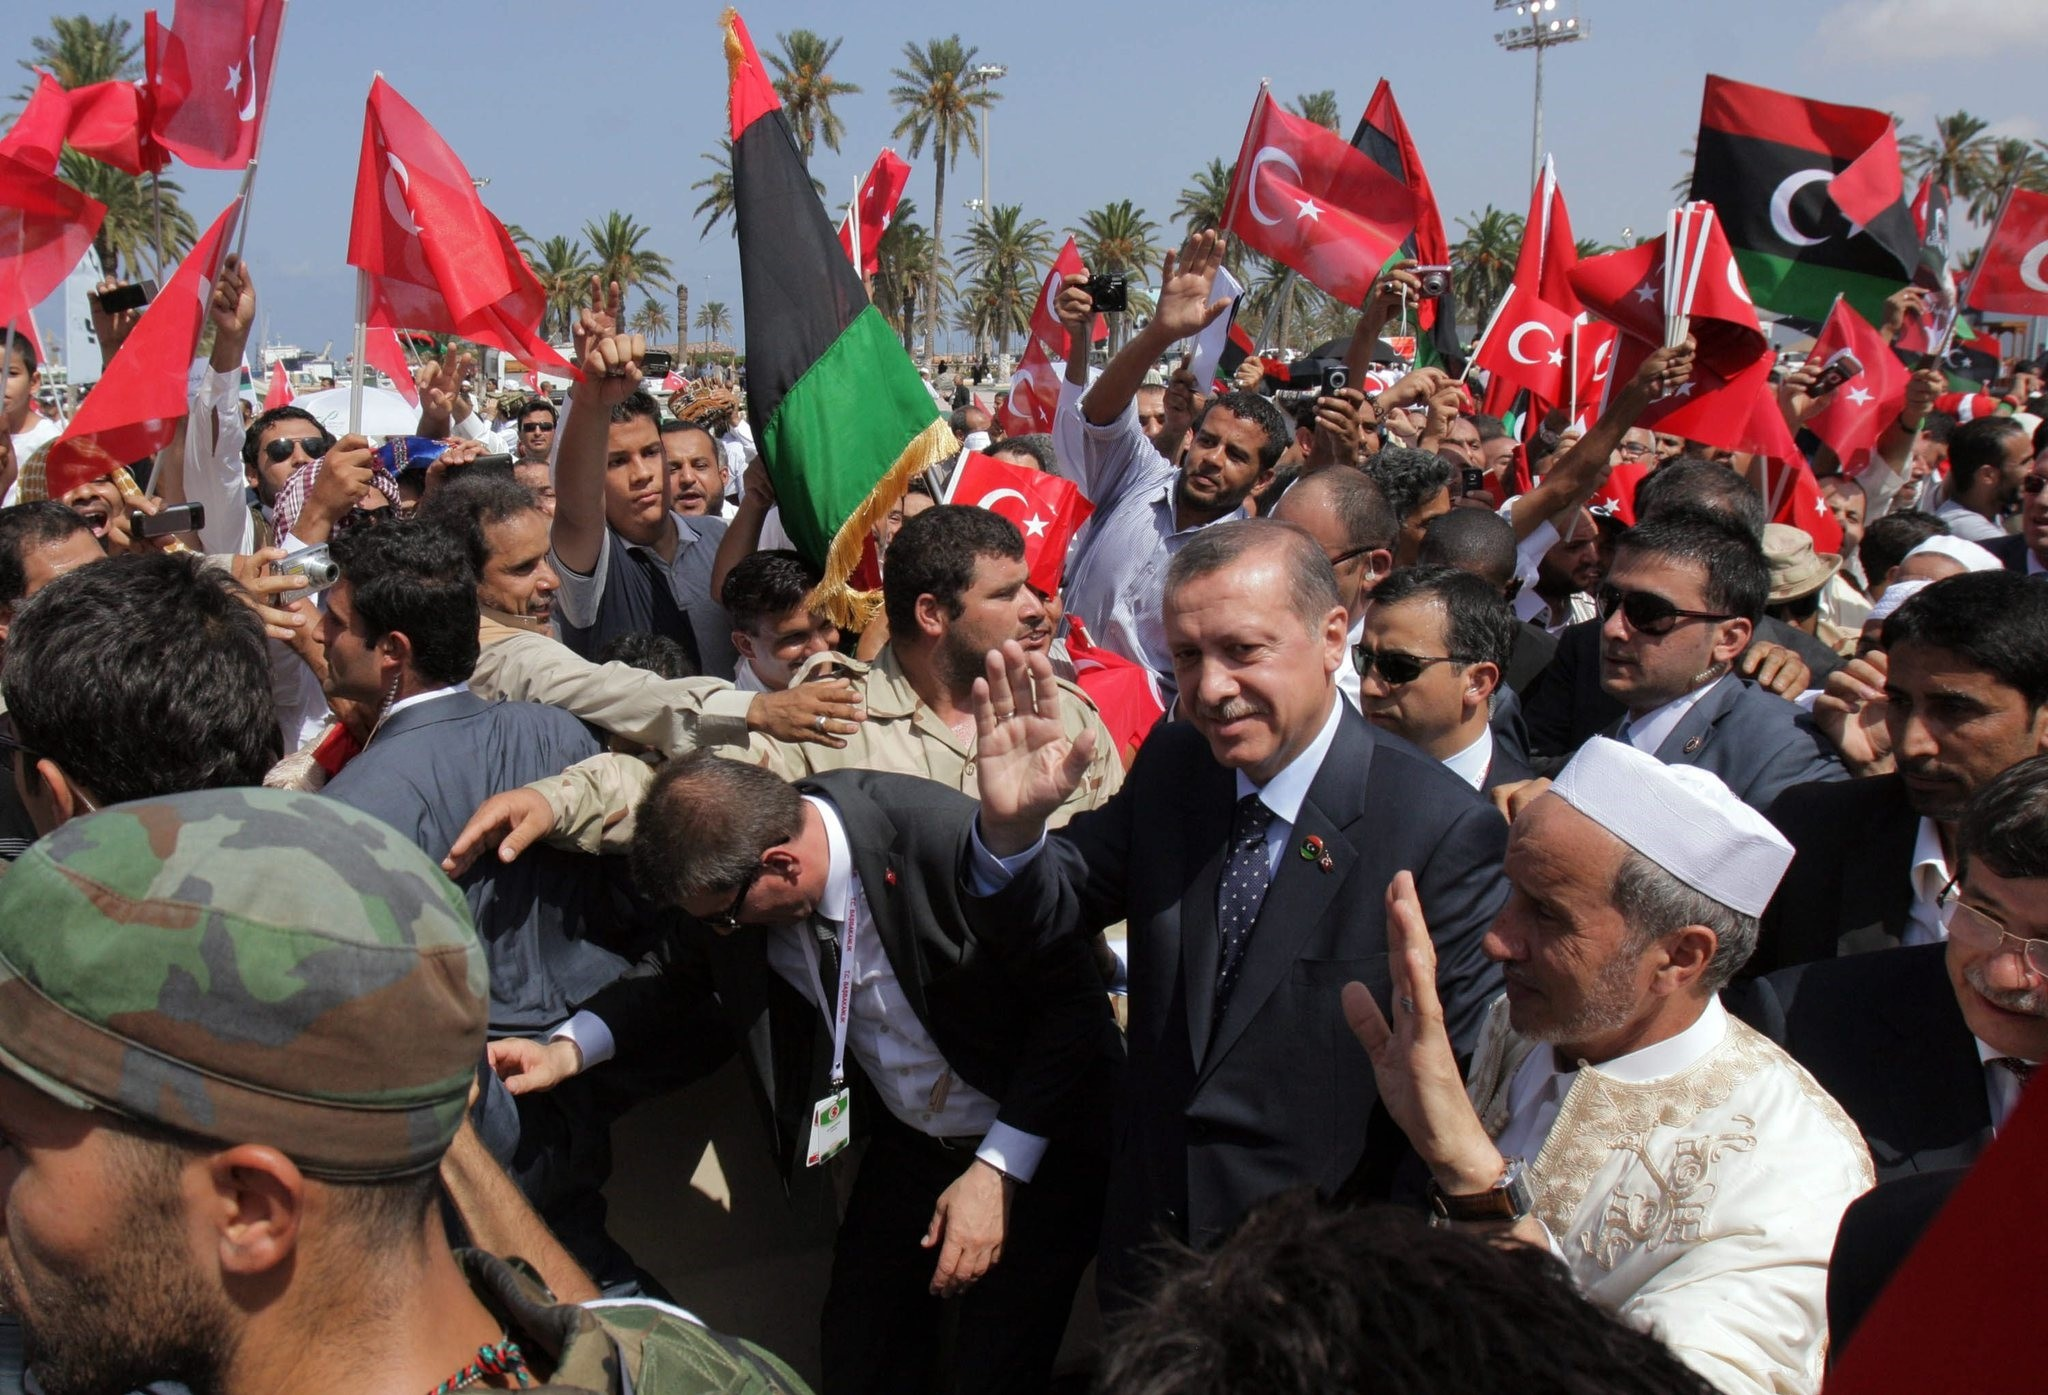 President Recep Tayyip Erdogan attends Friday prayers in Tripoli on Sept. 16, 2011, on the final leg of his ,Arab Spring Tour.u201d